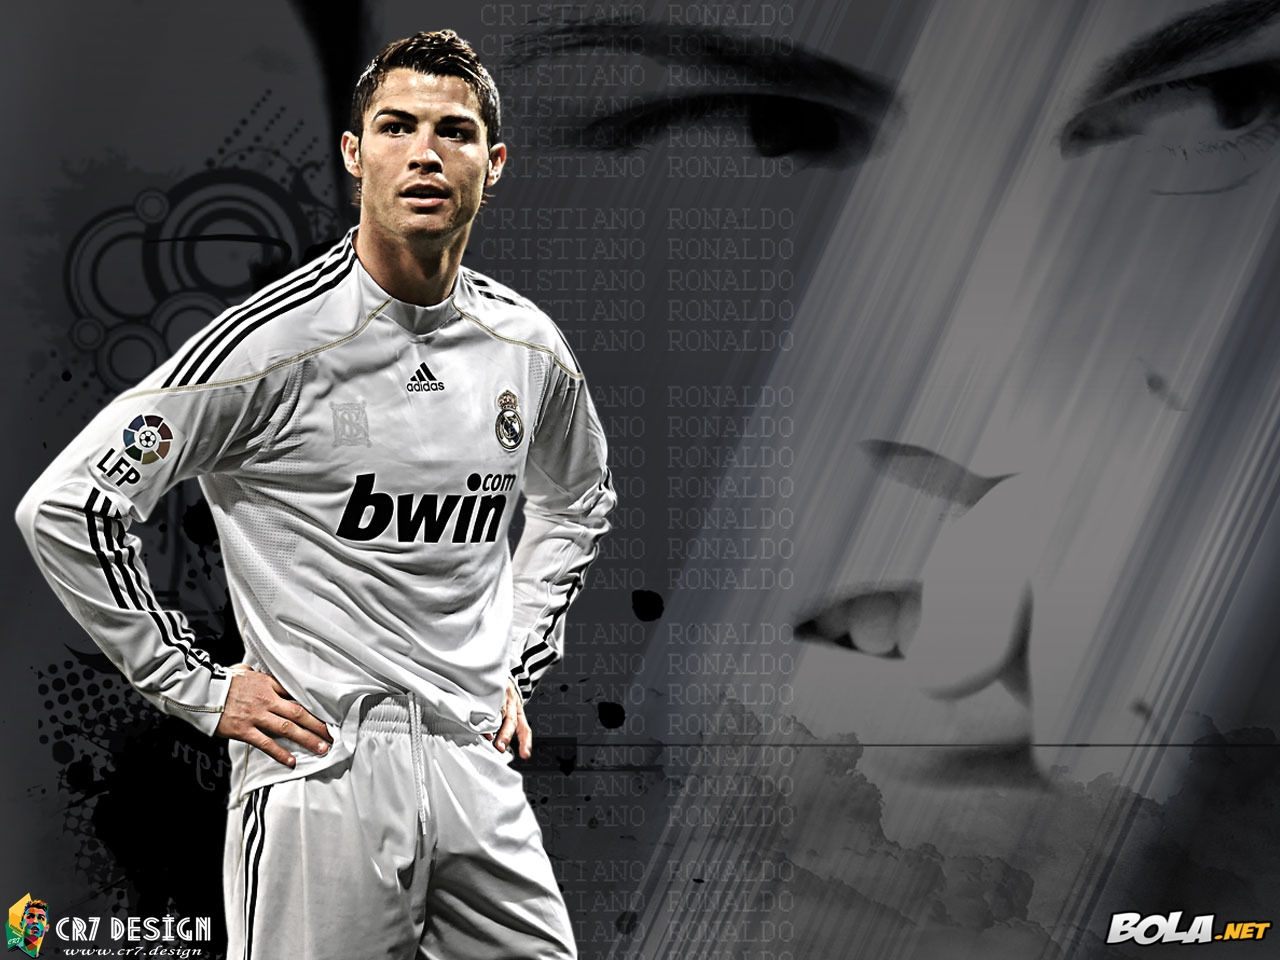 ciristiano-ronaldo-wallpaper-design-115